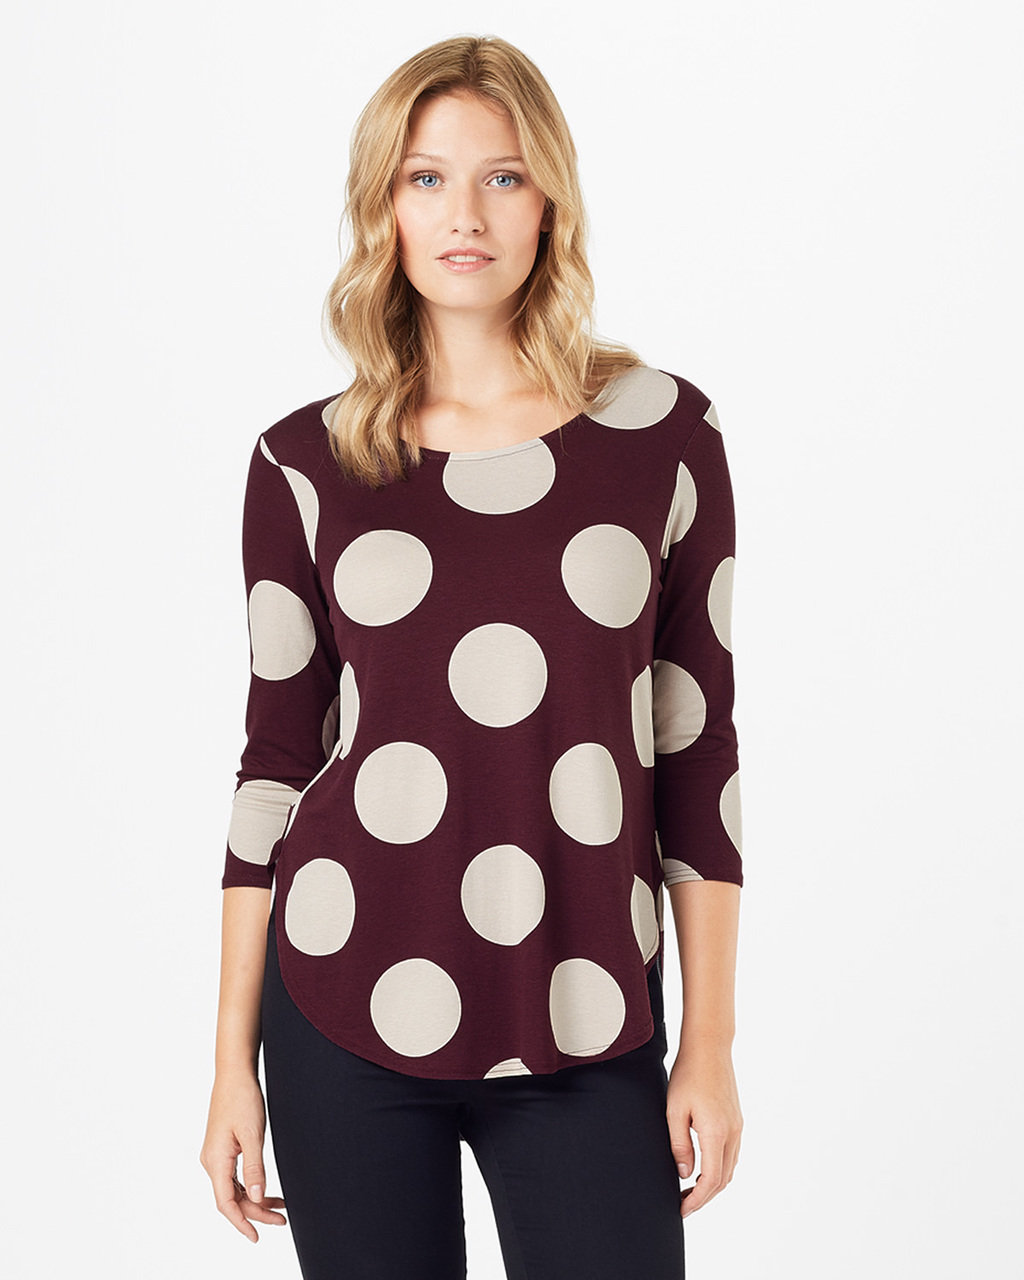 Anna Spot Top - neckline: round neck; style: t-shirt; pattern: polka dot; secondary colour: ivory/cream; predominant colour: burgundy; occasions: casual, creative work; length: standard; fibres: cotton - 100%; fit: body skimming; sleeve length: 3/4 length; sleeve style: standard; pattern type: fabric; pattern size: standard; texture group: jersey - stretchy/drapey; season: a/w 2016; wardrobe: highlight